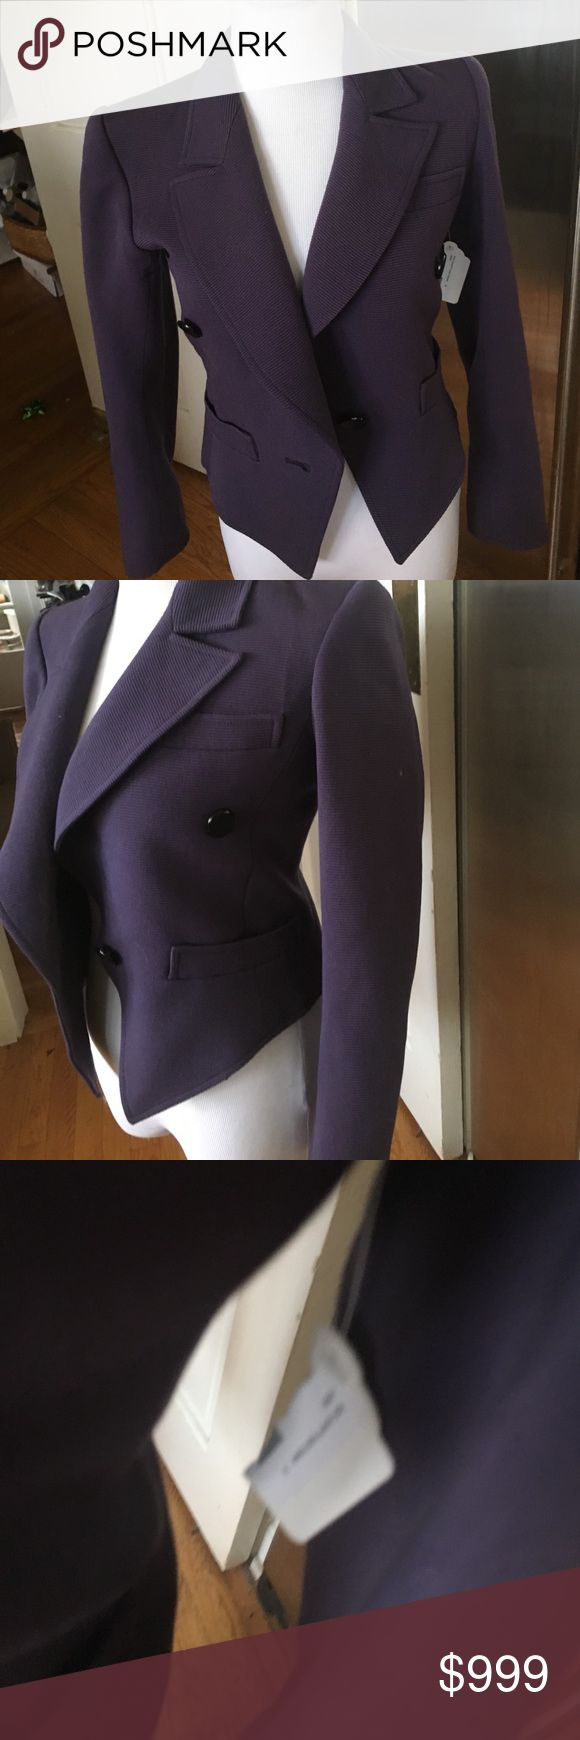 "NWT SAINT LAURENT Rive Gauche Purple CroppedBlazer Size 34, XS this jacket is actually ""Vintage"" but my mother put it in her Closet and forgot about it  (HOW U COULD FORGET @ THIS BOGGLES MY MIND😳🙄😬)! So it's Brand New with the tags still on it and was bought by my Grandmother IN PARIS, (along w most of my LV BAGS 🤗. It has 2 ""real"" front pockets and one center button And 2 for decor on each side. Anyway, THIS is what Quality, Style and Sophistication LOOK LIKE ladies! Saint Laurent…"